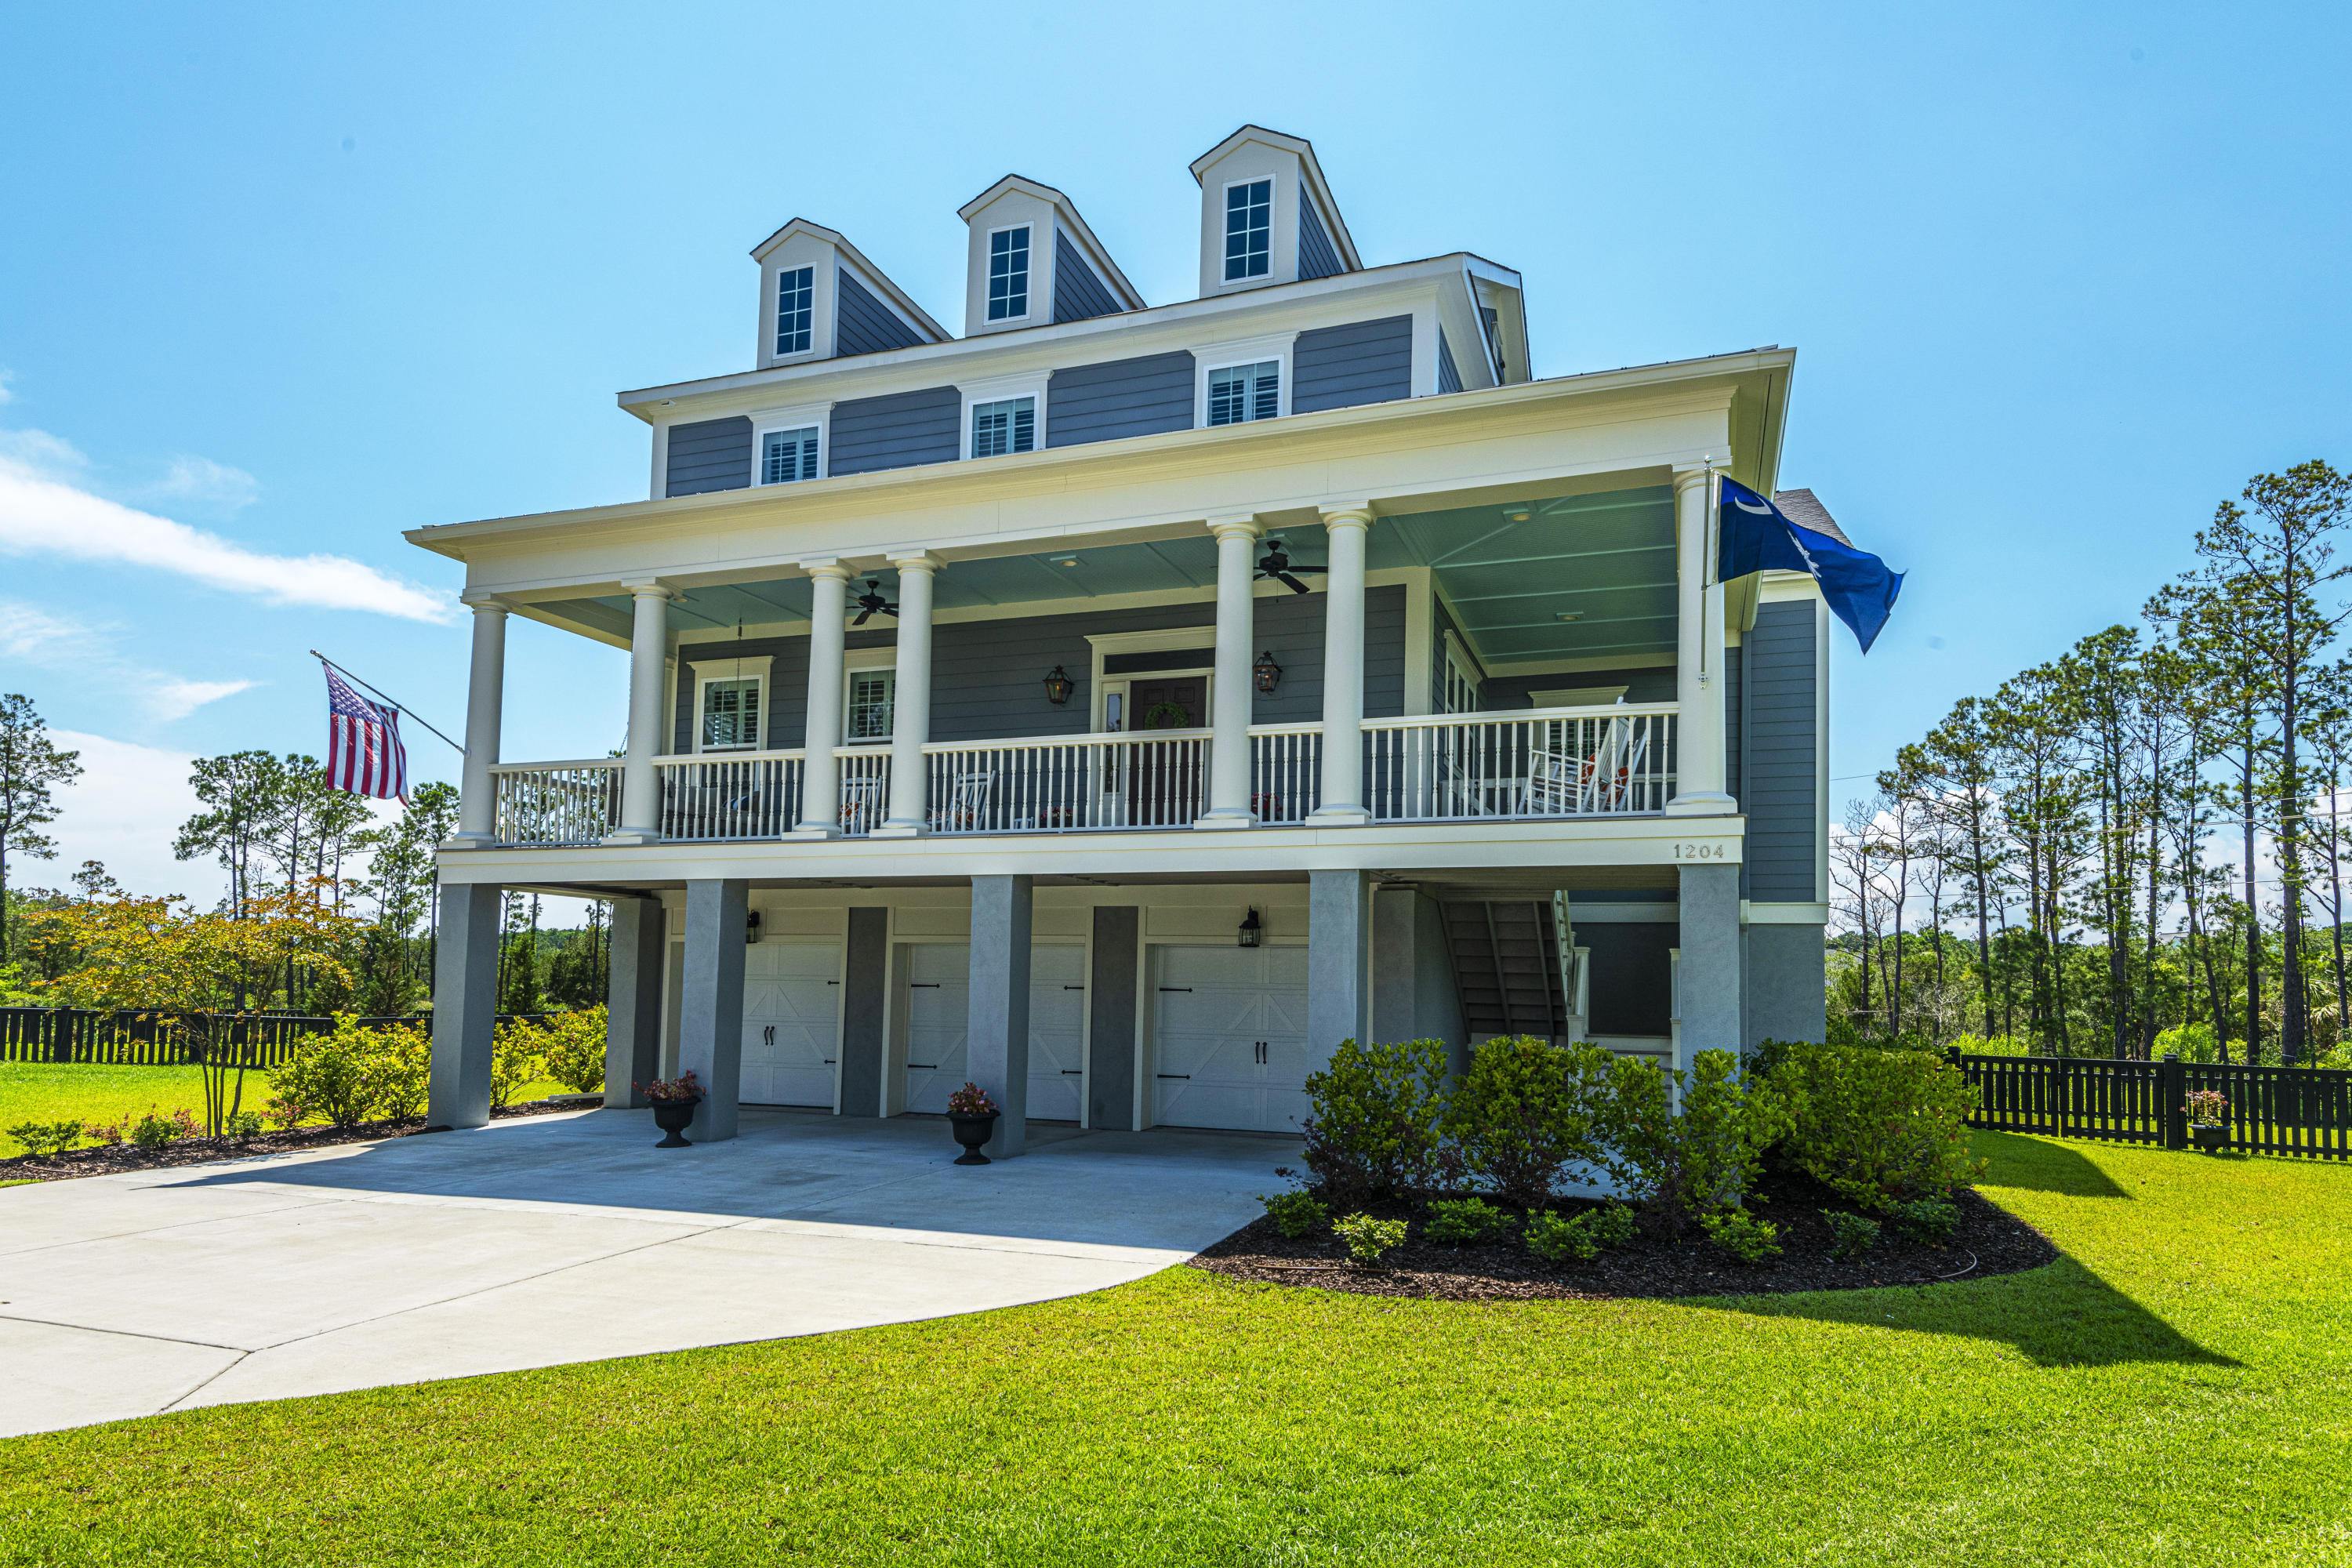 Stratton by the Sound Homes For Sale - 1204 Spottail, Mount Pleasant, SC - 0